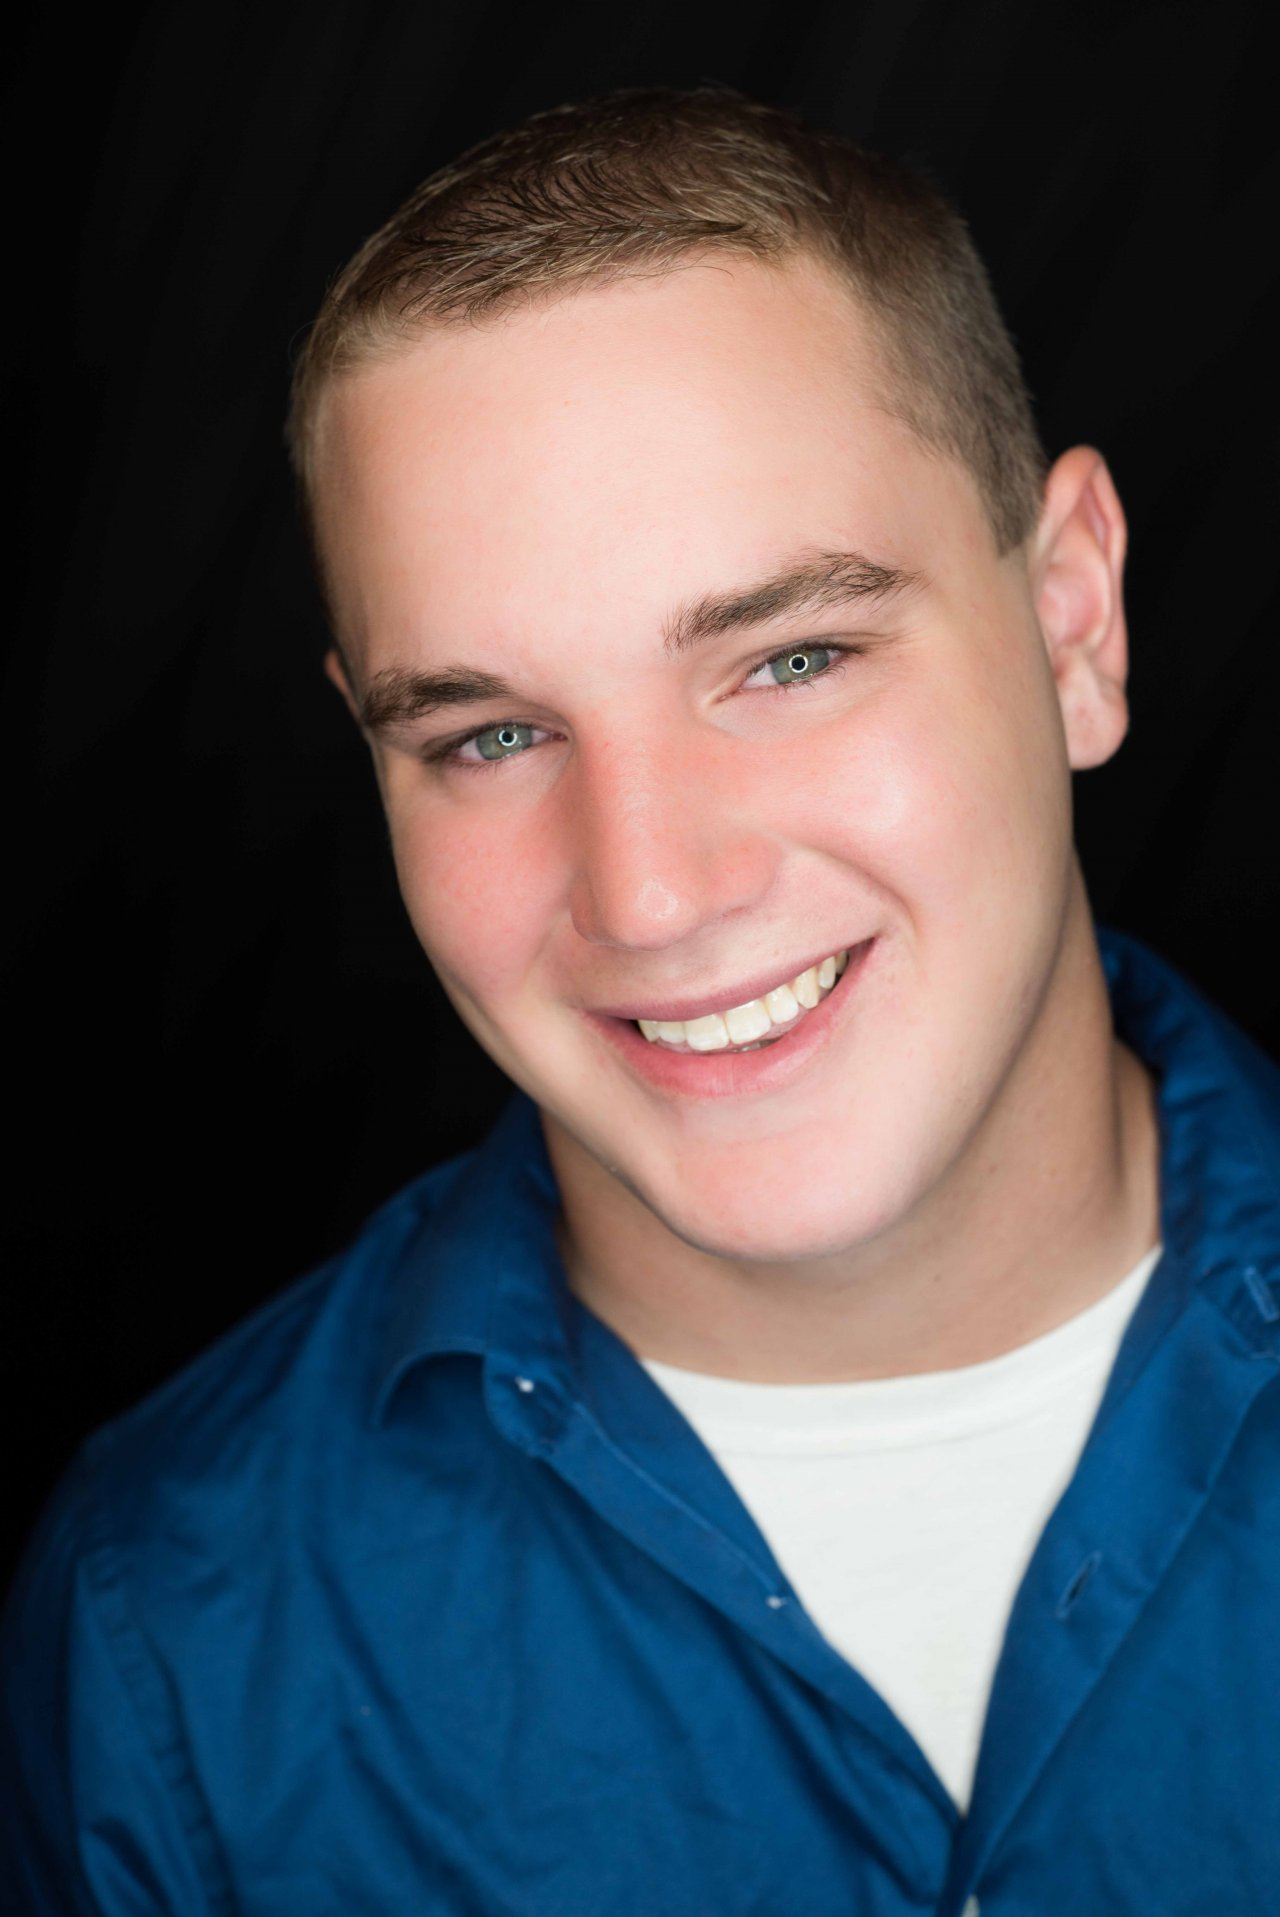 Senior Headshot